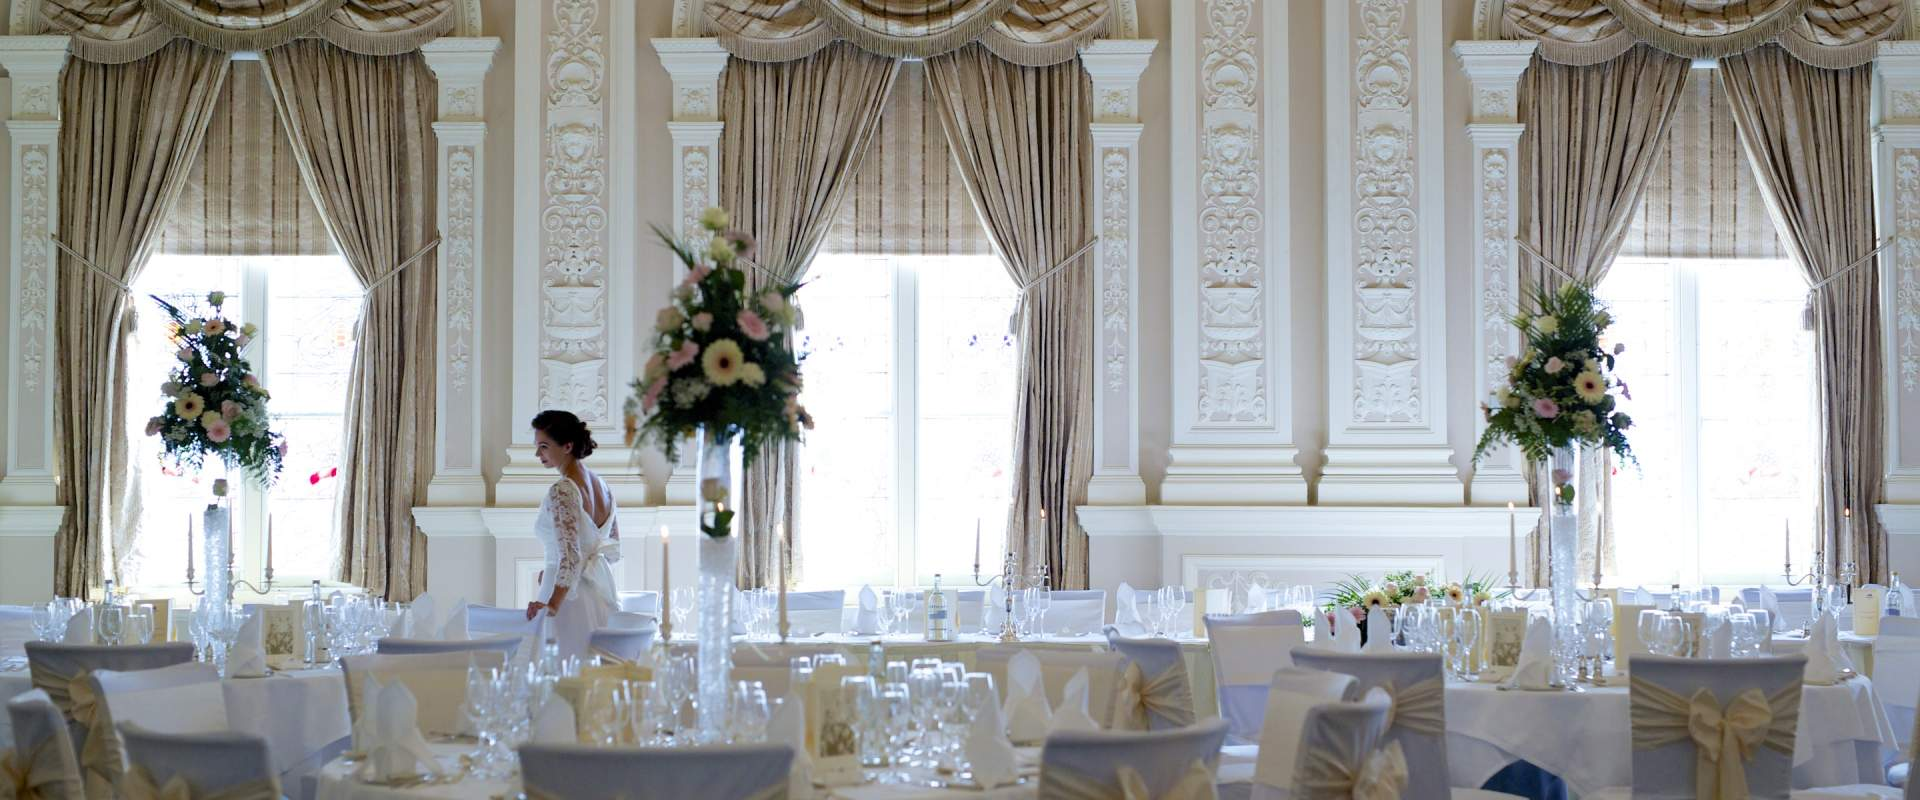 Wedding Venues In Eastbourne East Sussex Weddings At The Grand